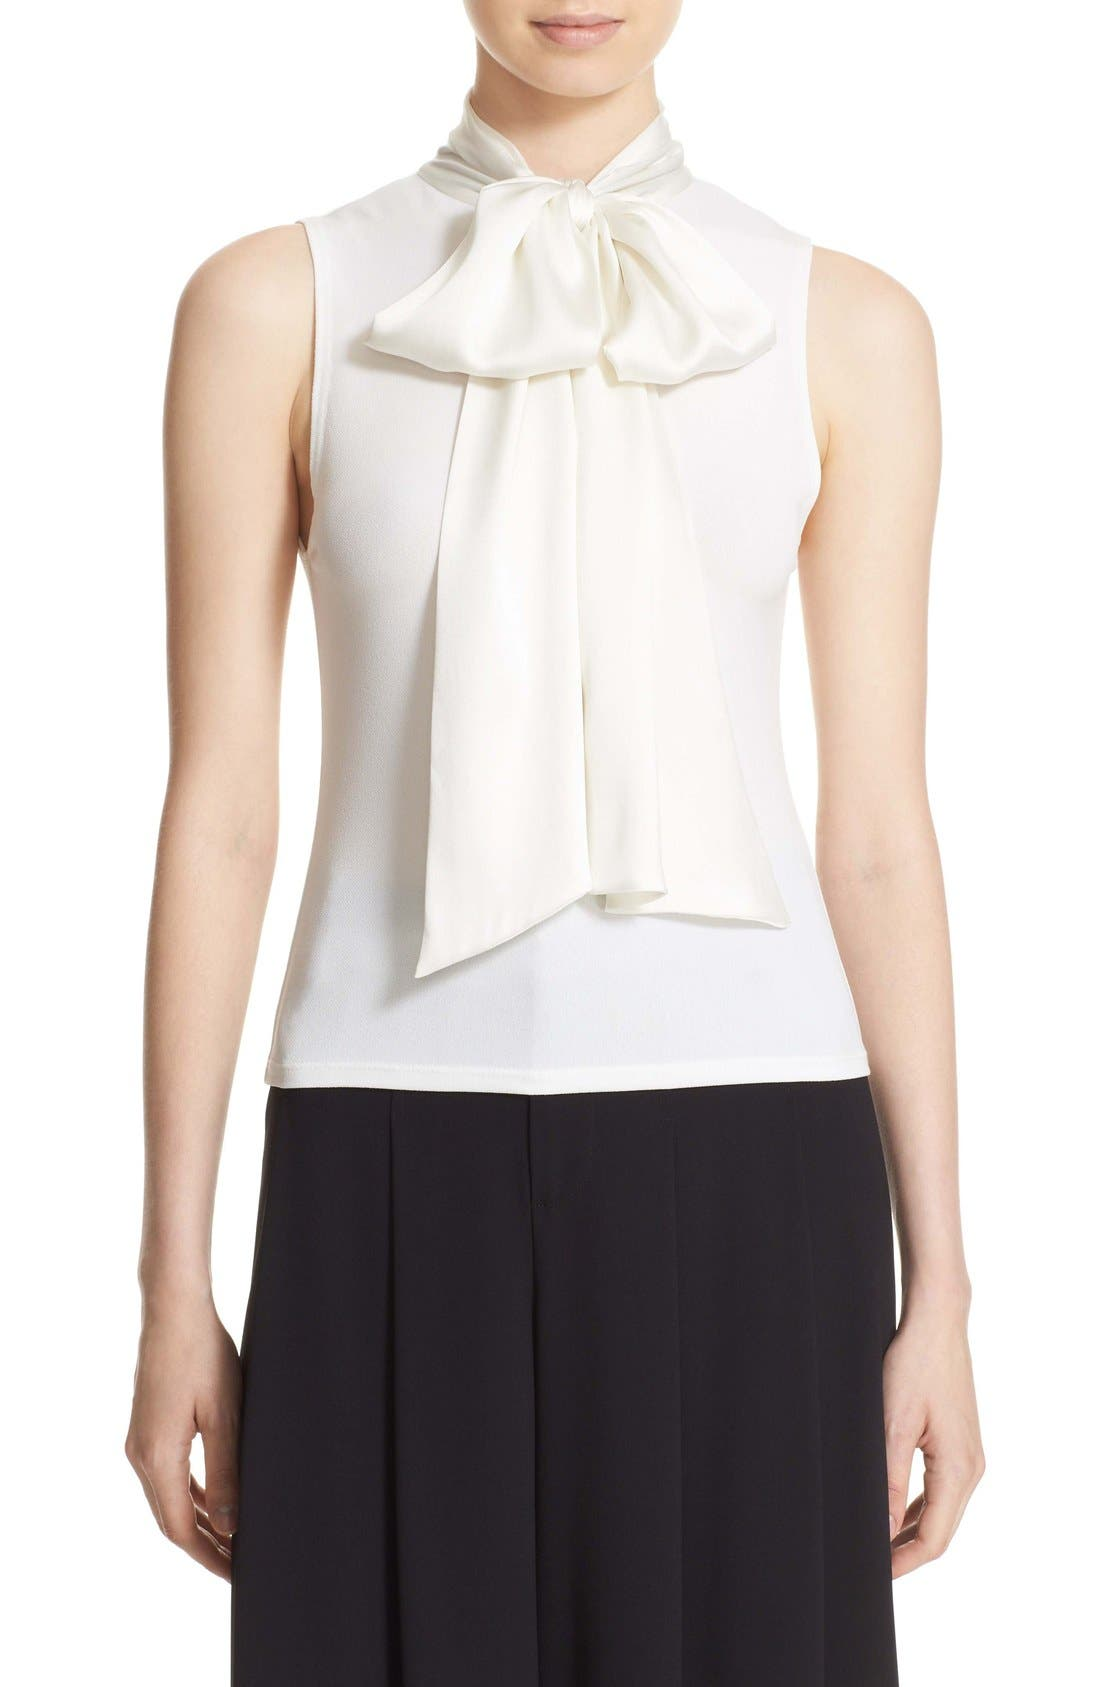 Main Image - Alice + Olivia 'Glynda' High Neck Sleeveless Blouse with Bow